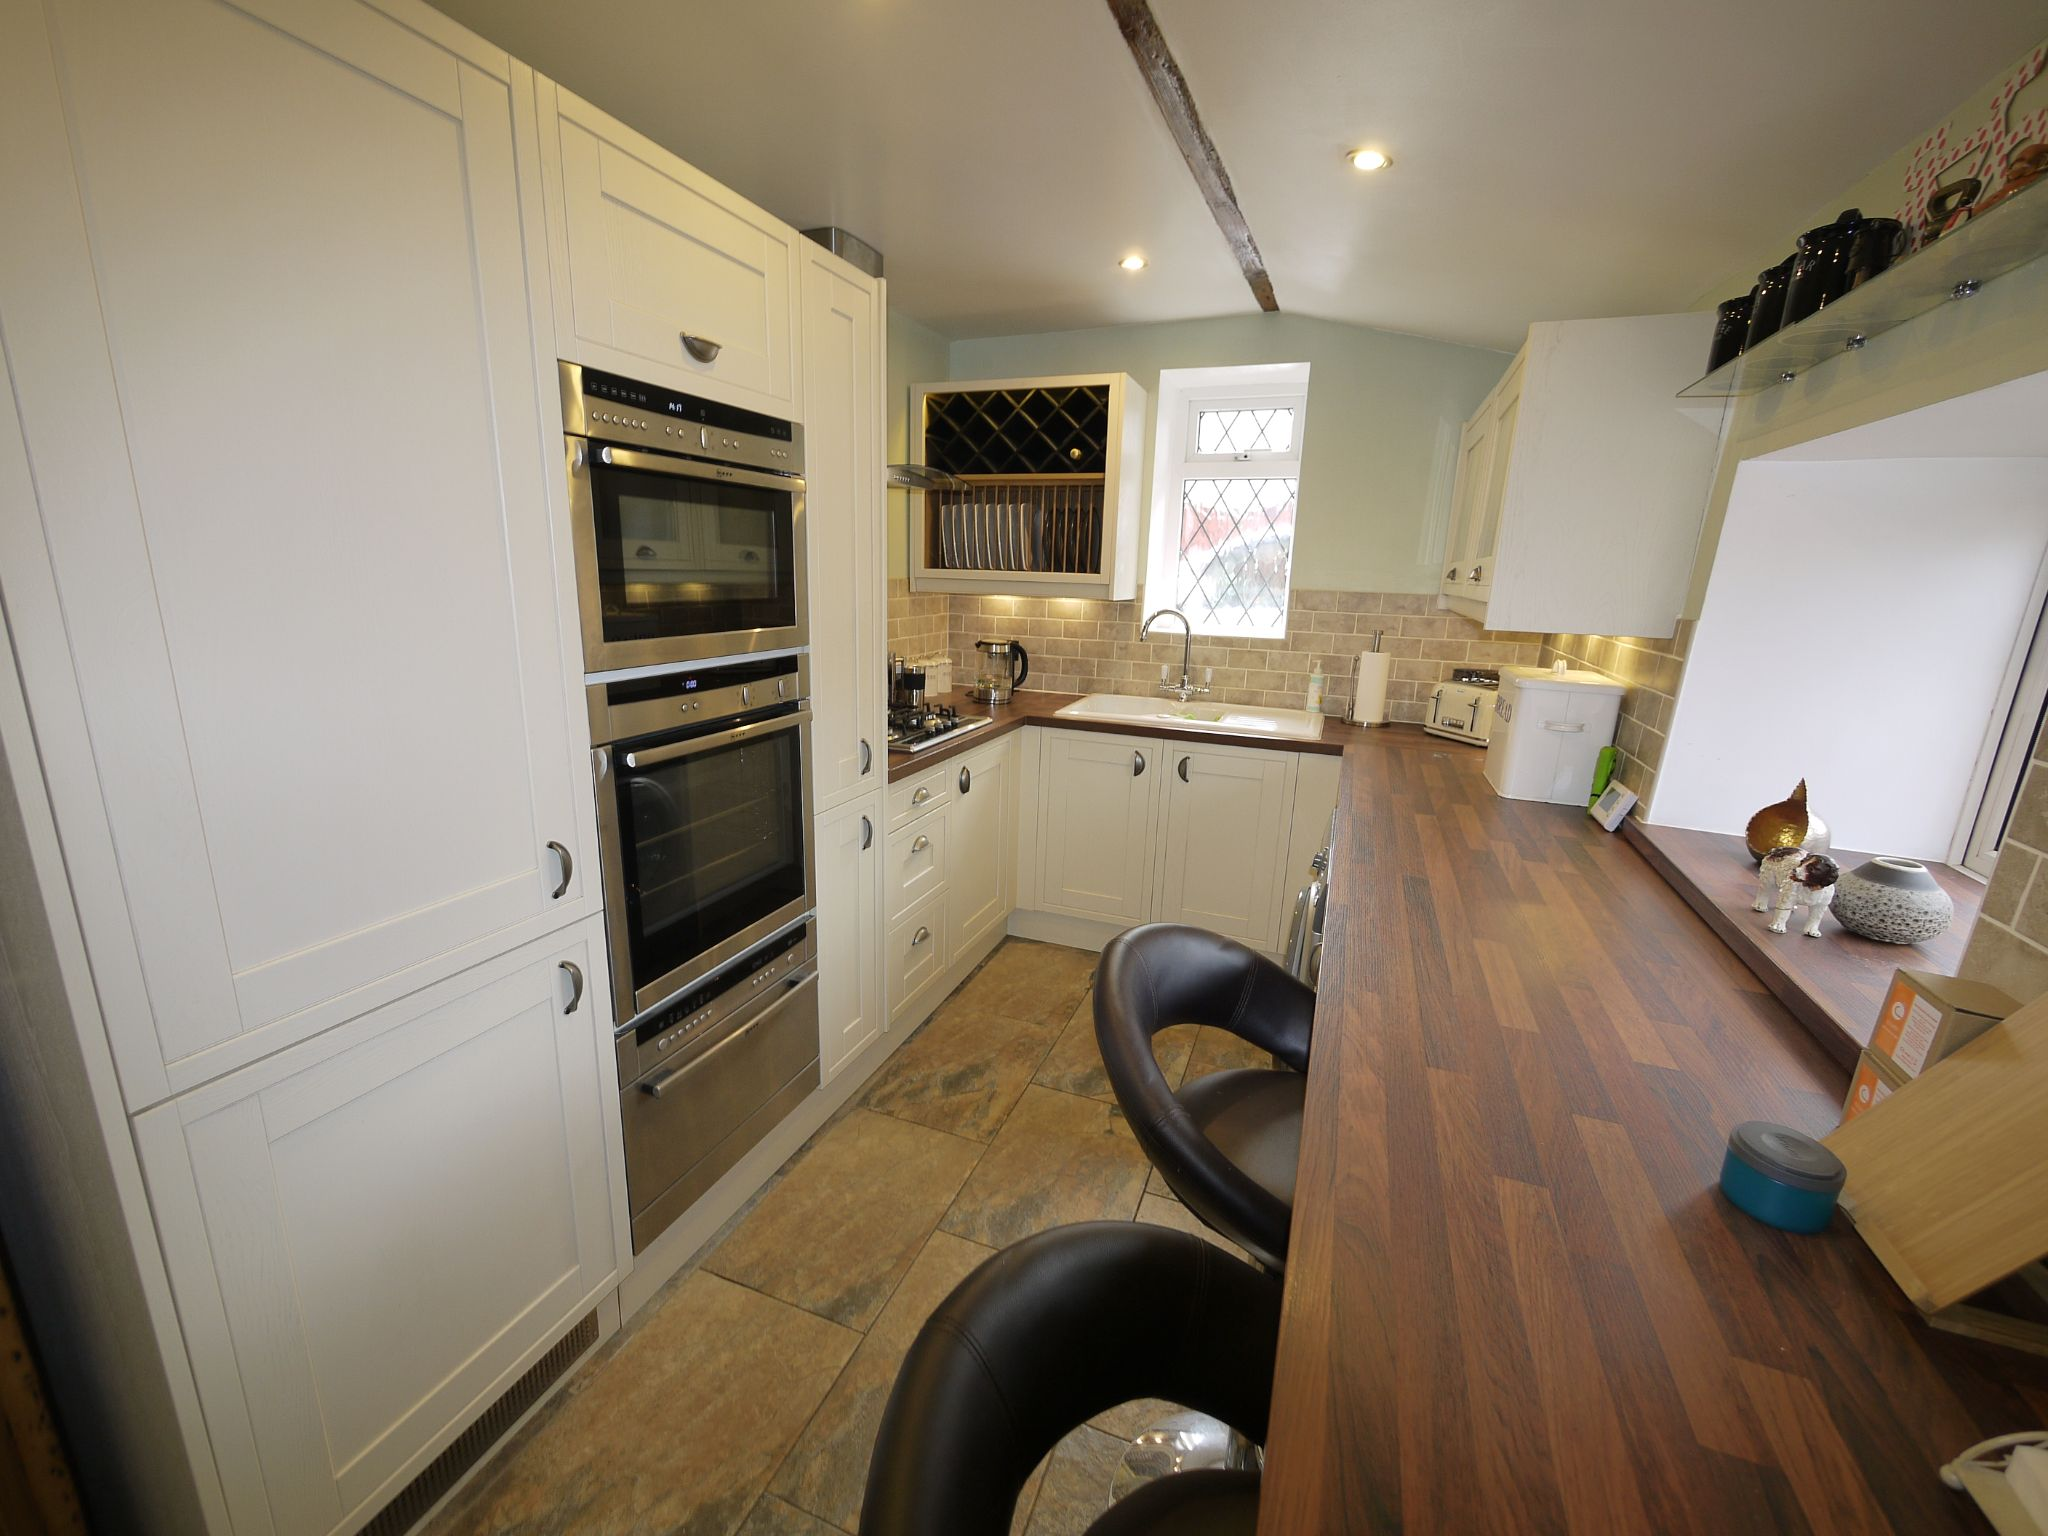 1 bedroom detached house For Sale in Brighouse - Photograph 7.